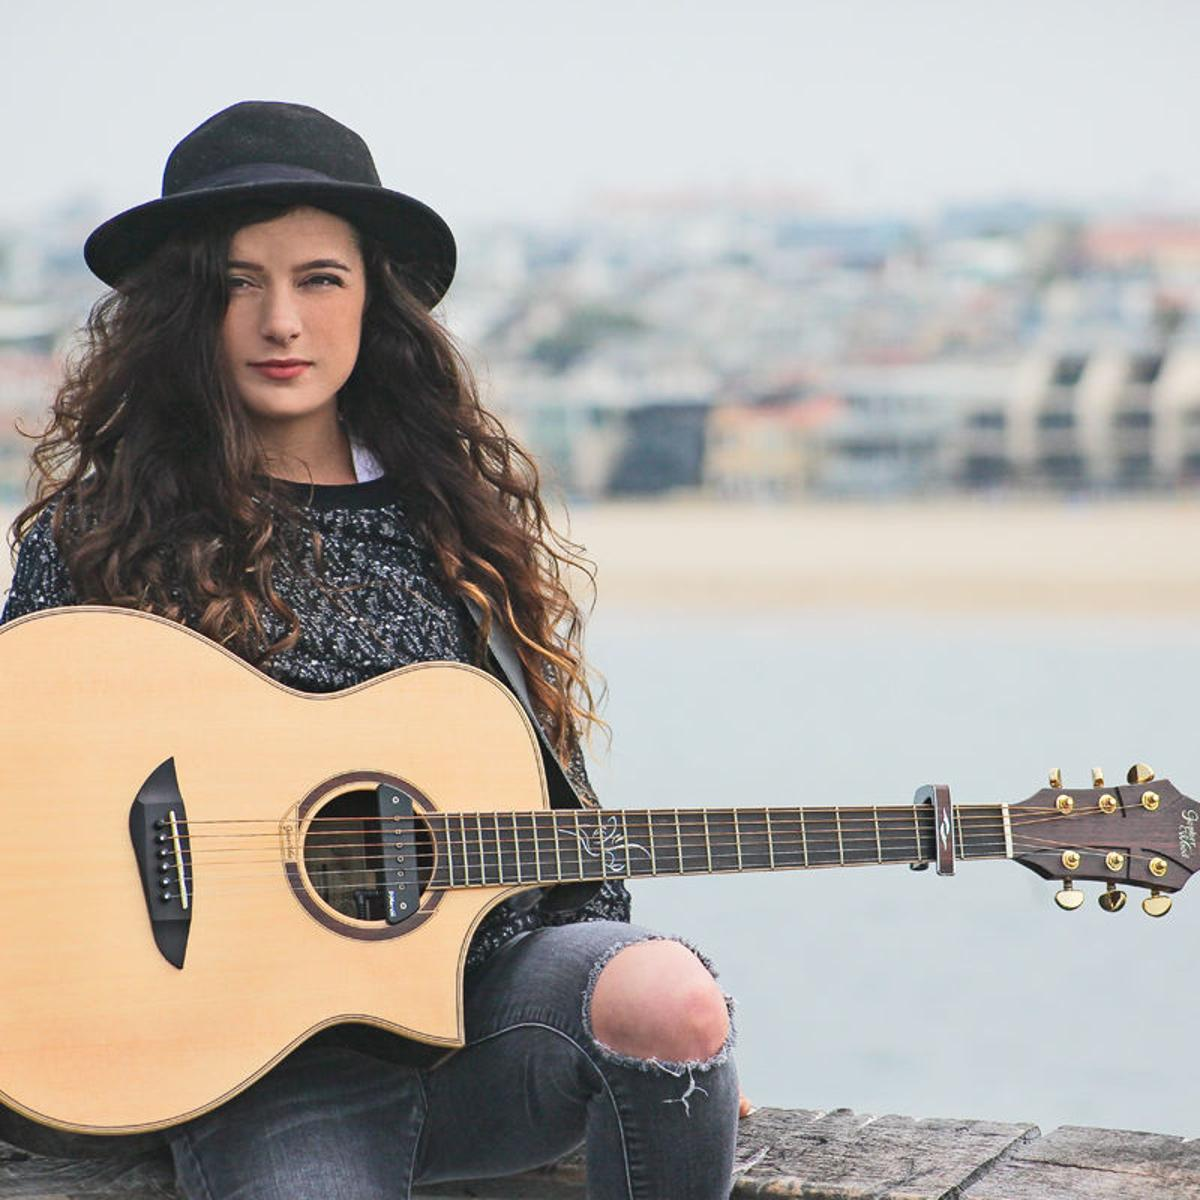 Amber Russell will let her guitar do the talking at Pump